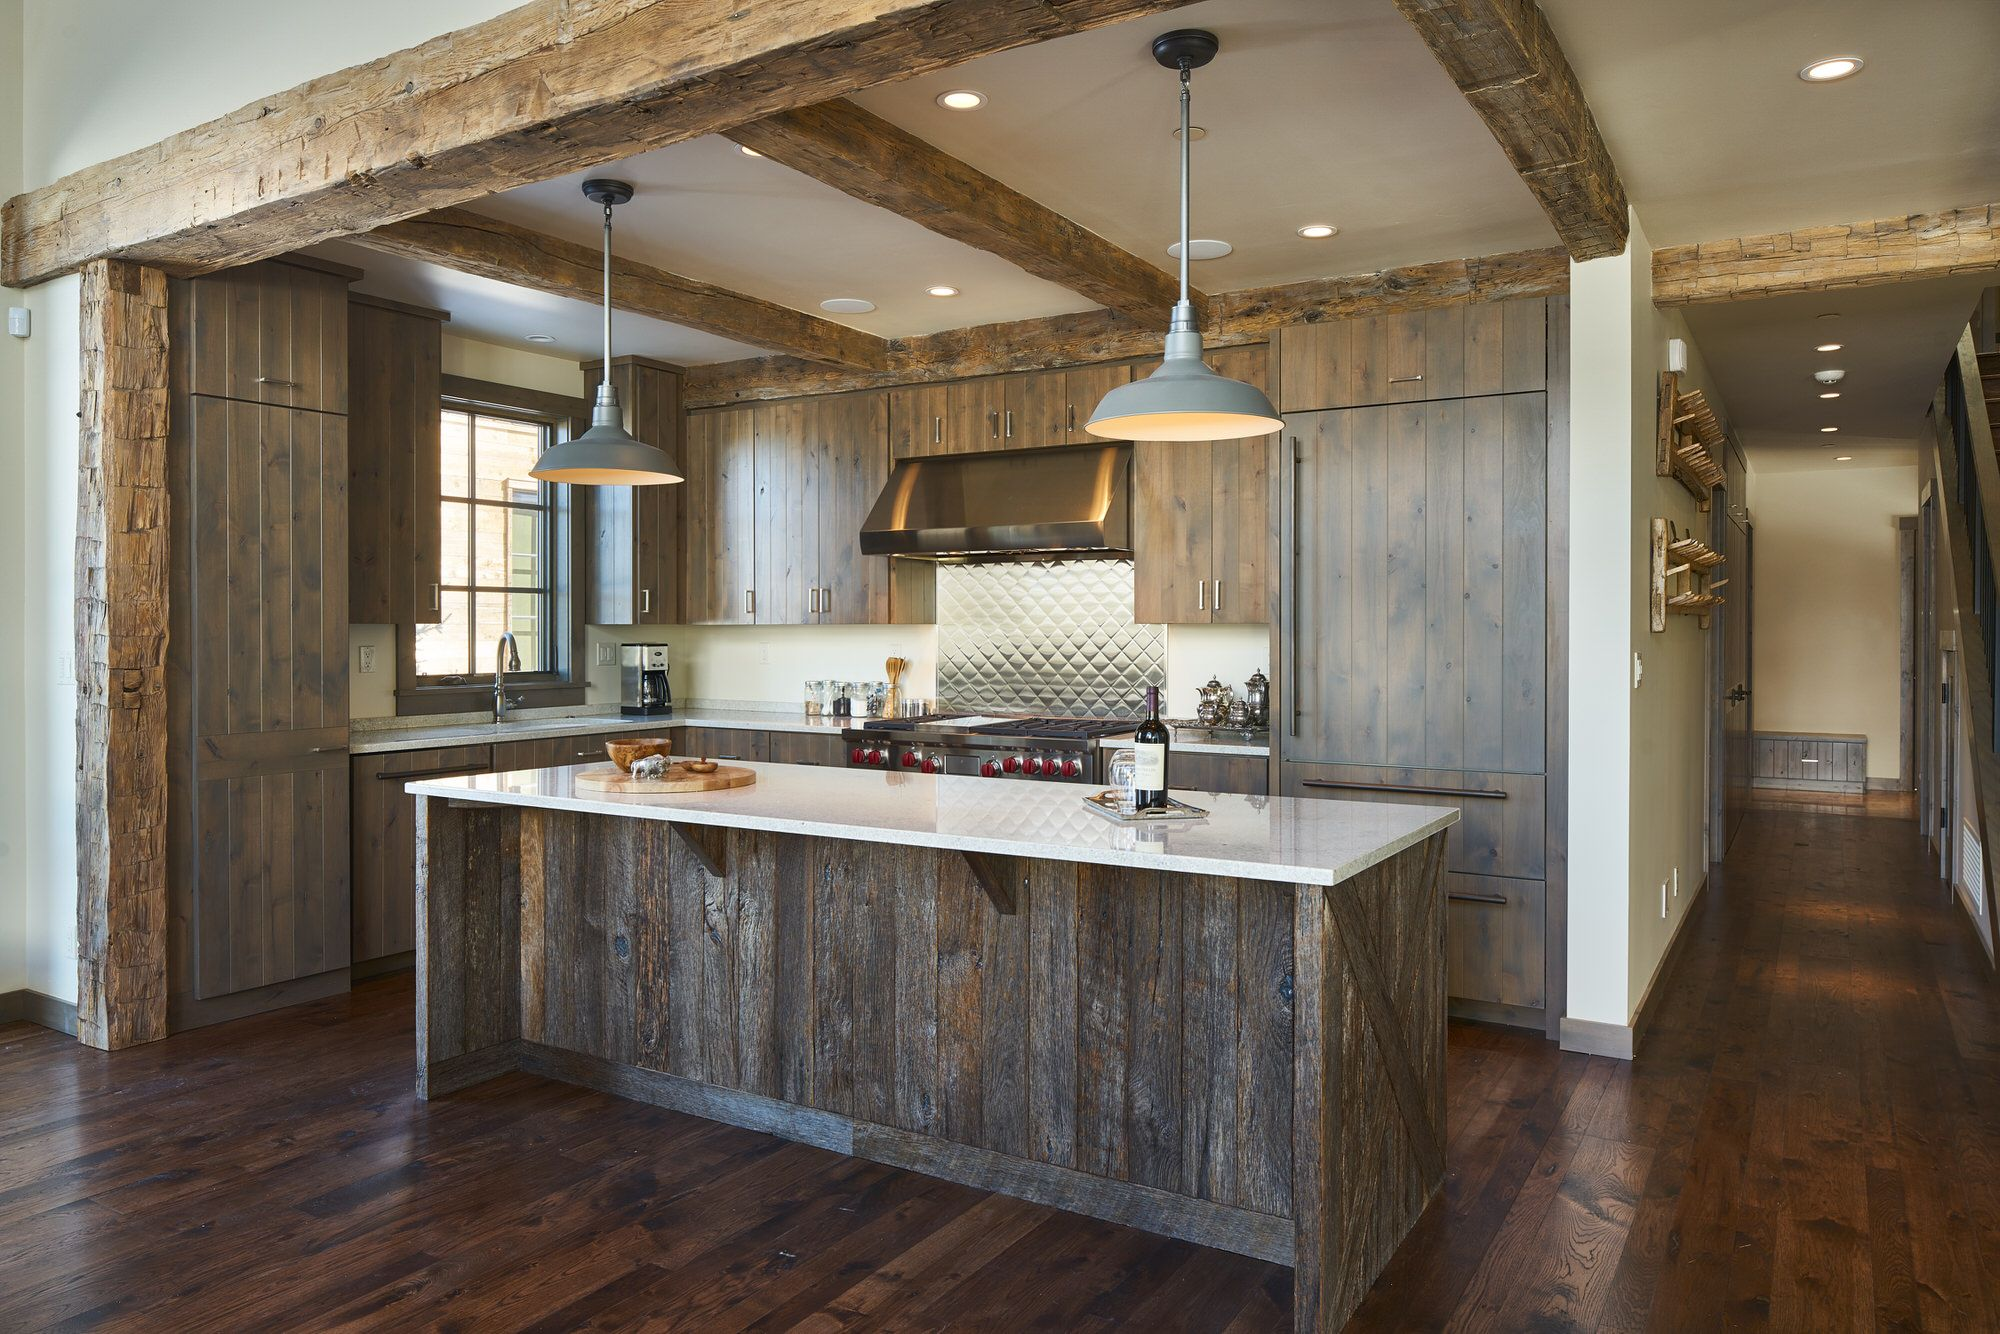 Küche Rustikal Modern 15 Best Rustic Kitchens - Modern Country Rustic Kitchen